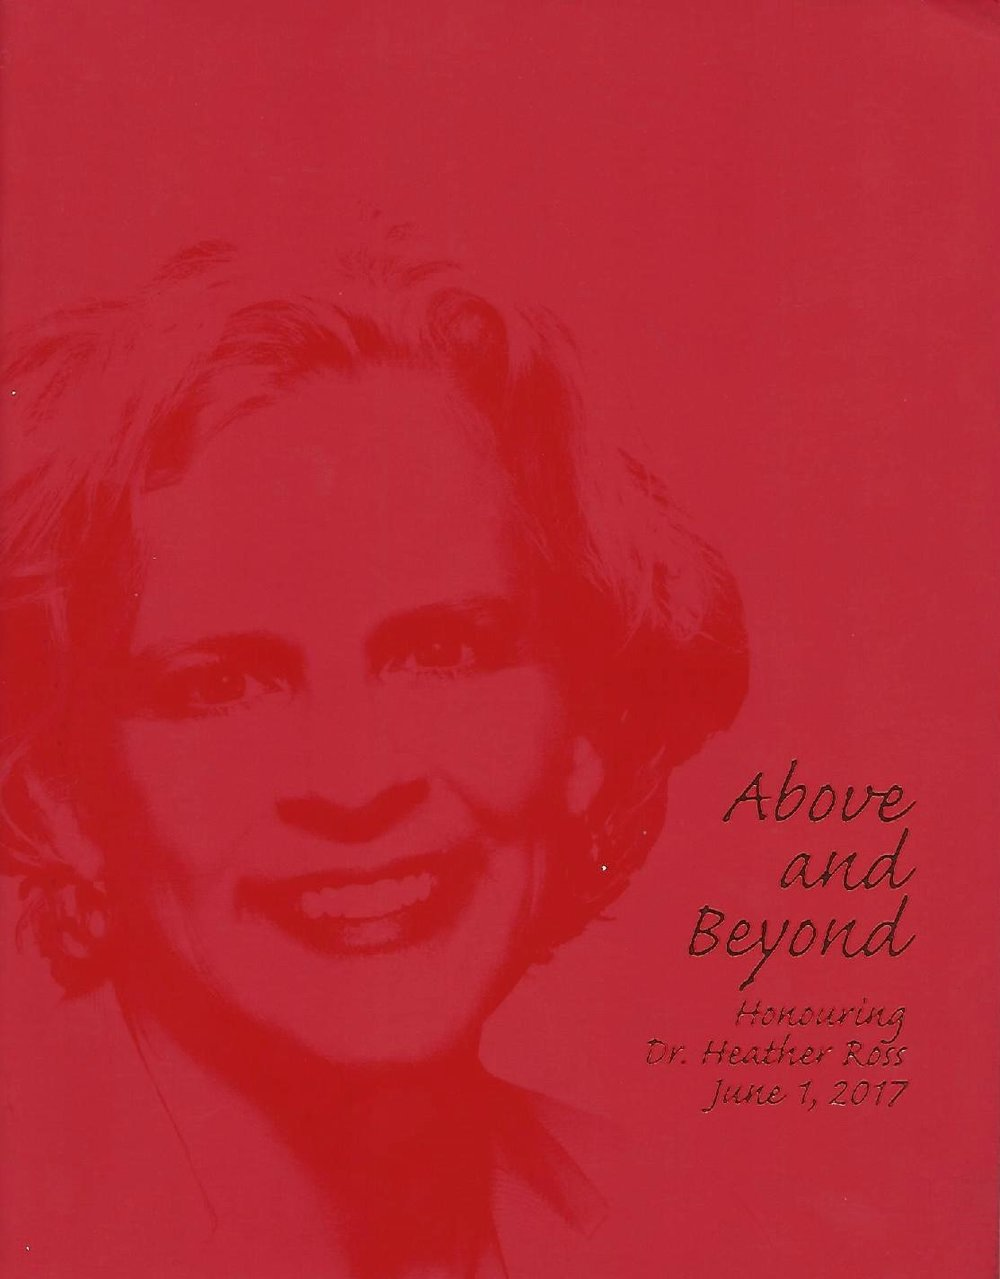 """Above and Beyond"", Toronto General Hospital Gala (44 pages)"